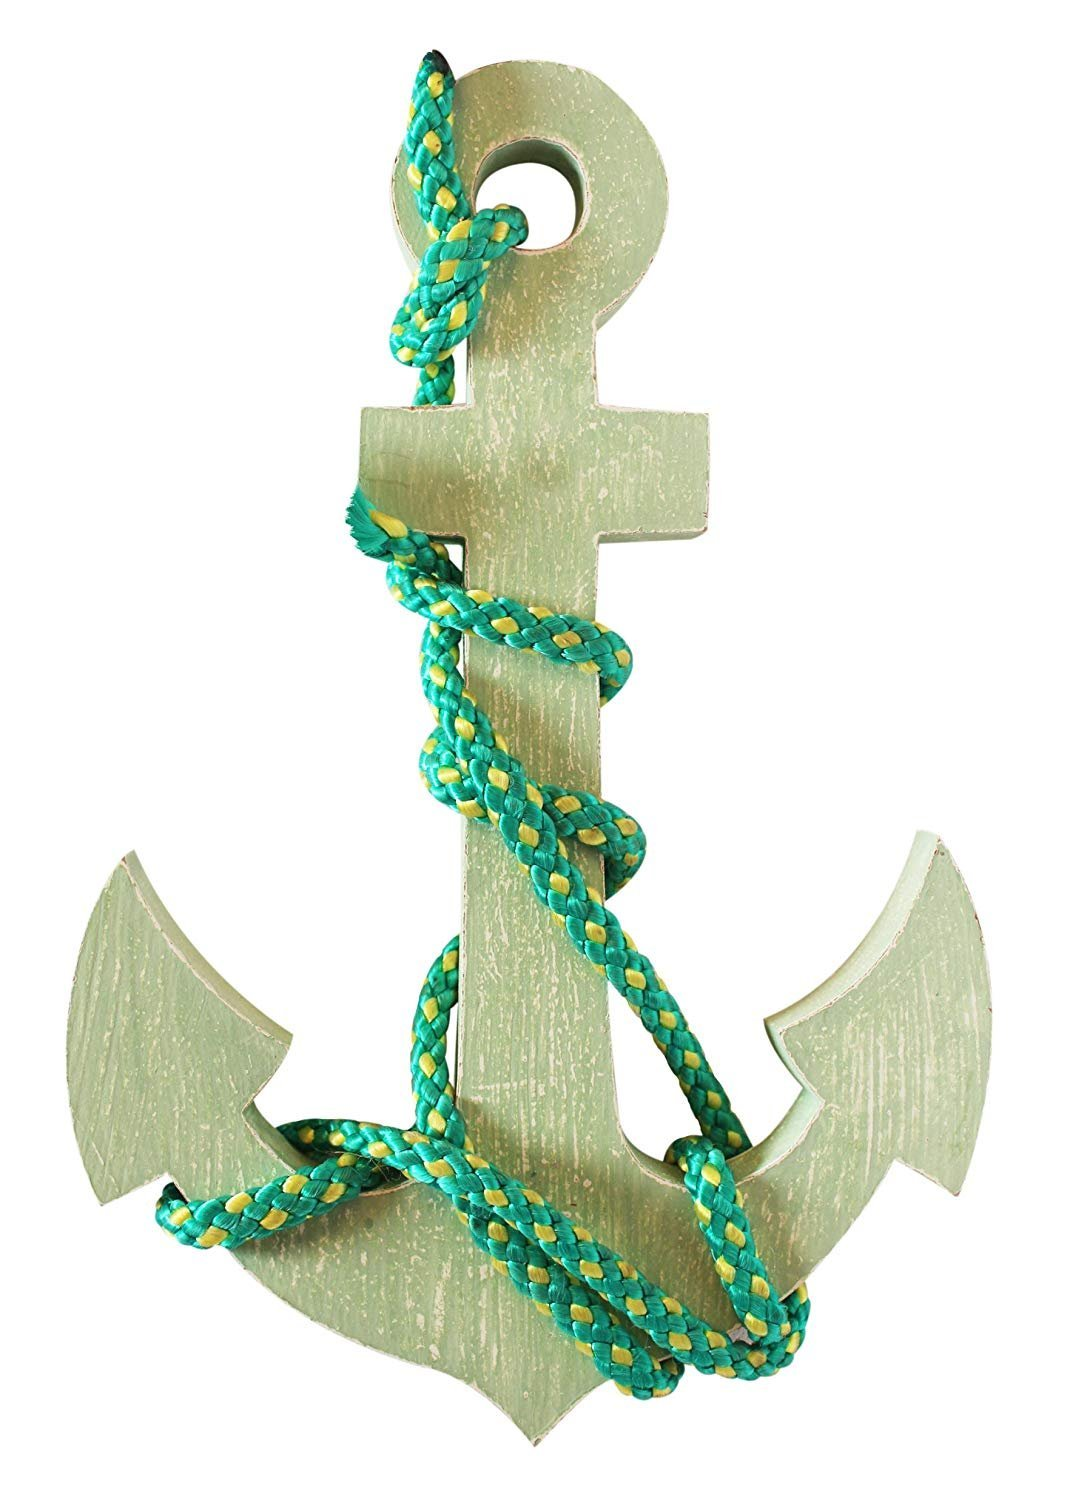 The StoreKing Wood Anchor with Rope Nautical Decor